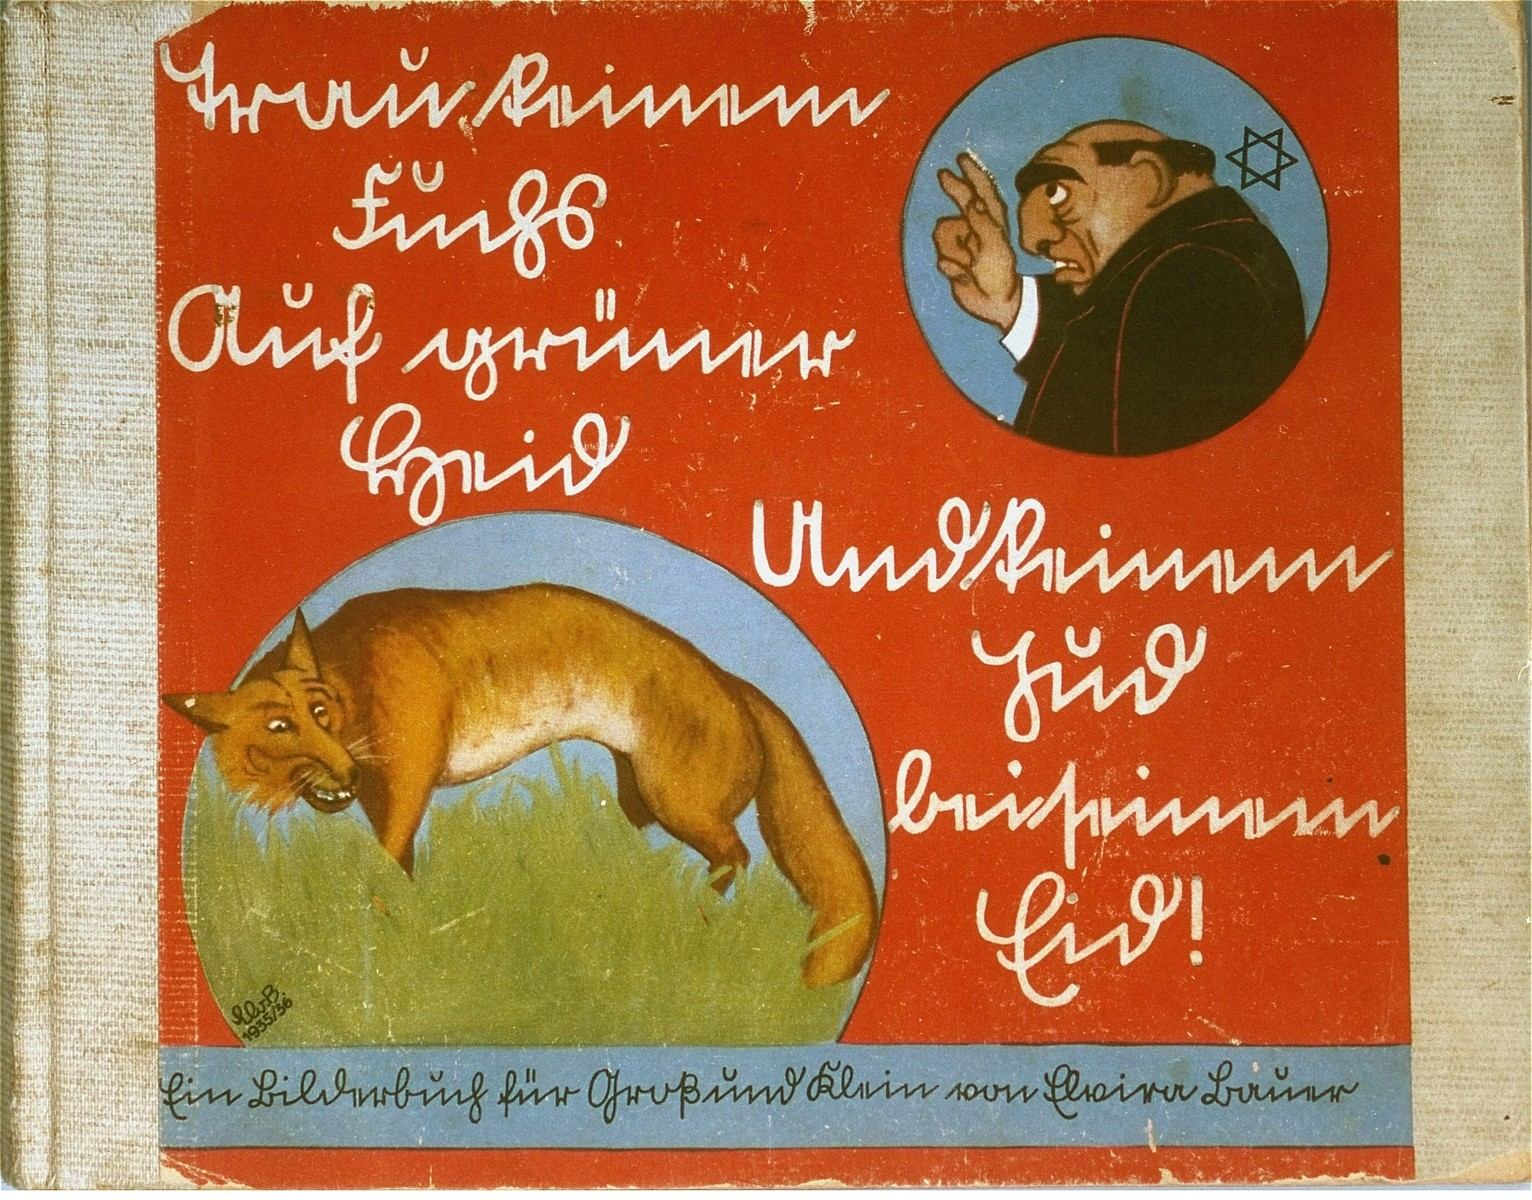 "Cover of the anti-Semitic children's book ""Trau keinem Fuchs auf gruener Heid und keinem Jud bein seinem Eid"" [Trust No Fox in the Green Meadow and No Jew on his Oath], published by Der Stuermer-Verlag."